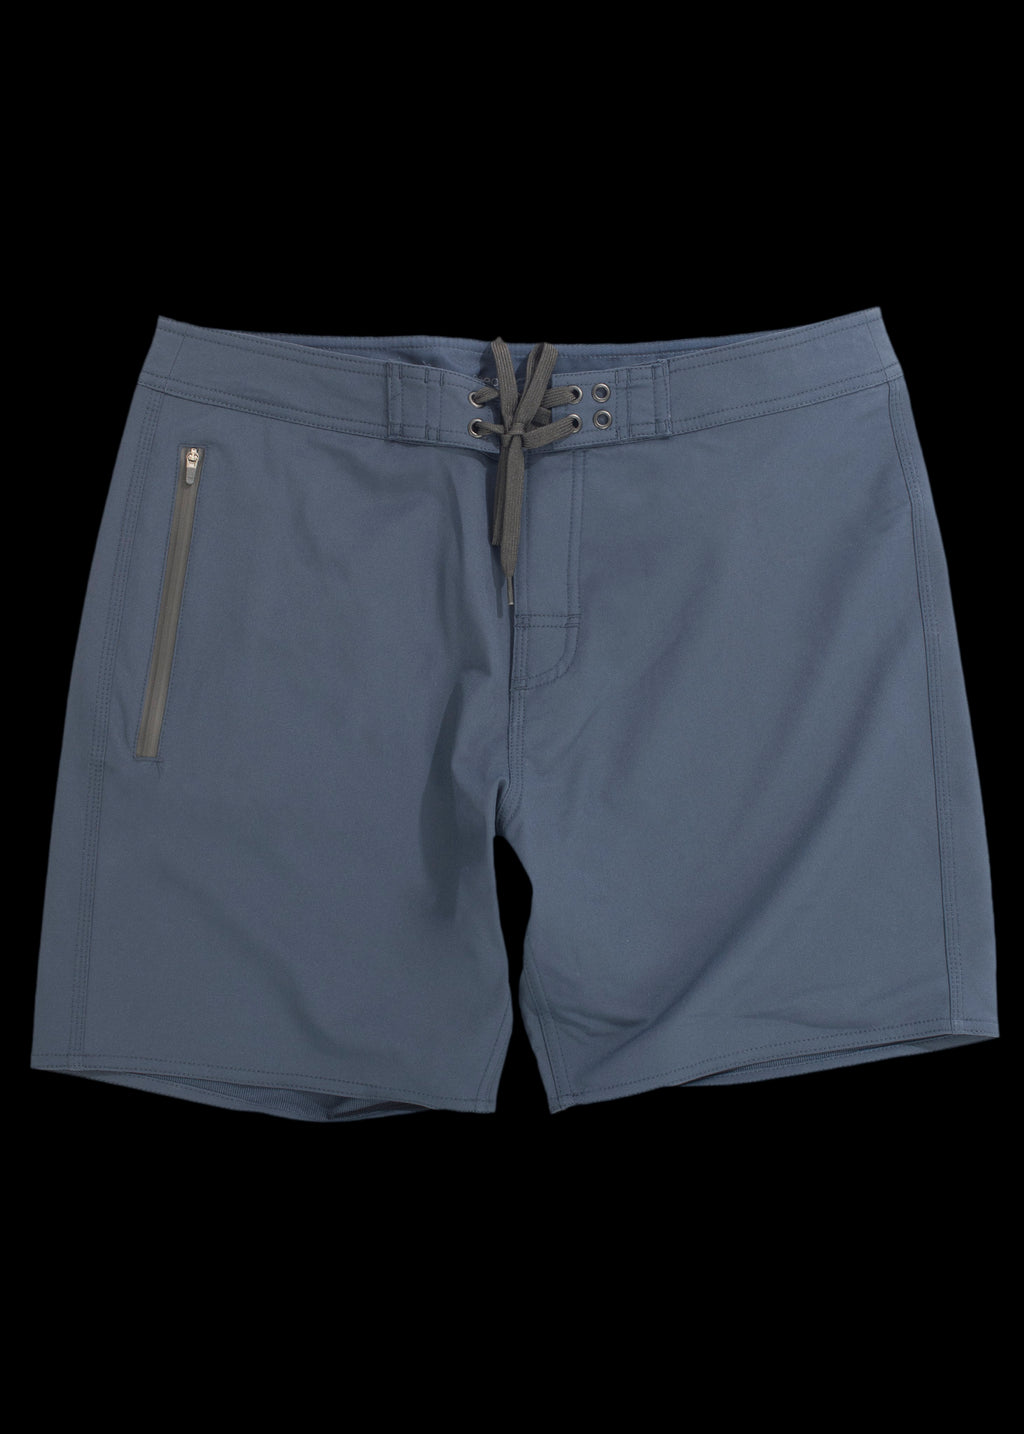 Navy straight leg boardshort